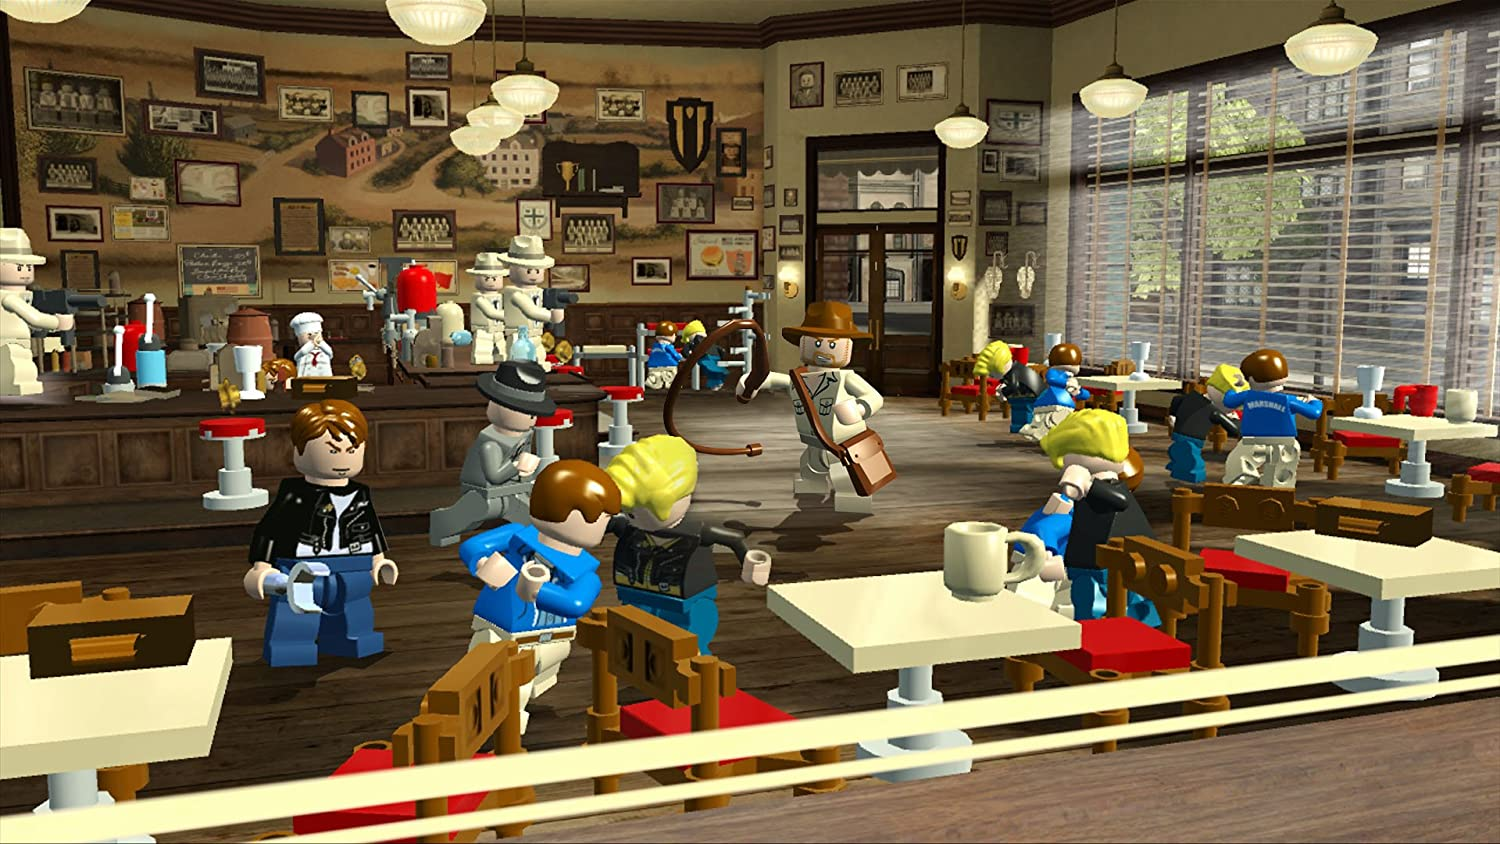 New Lego Games For Ps3 : Amazon lego indiana jones the adventure continues pc